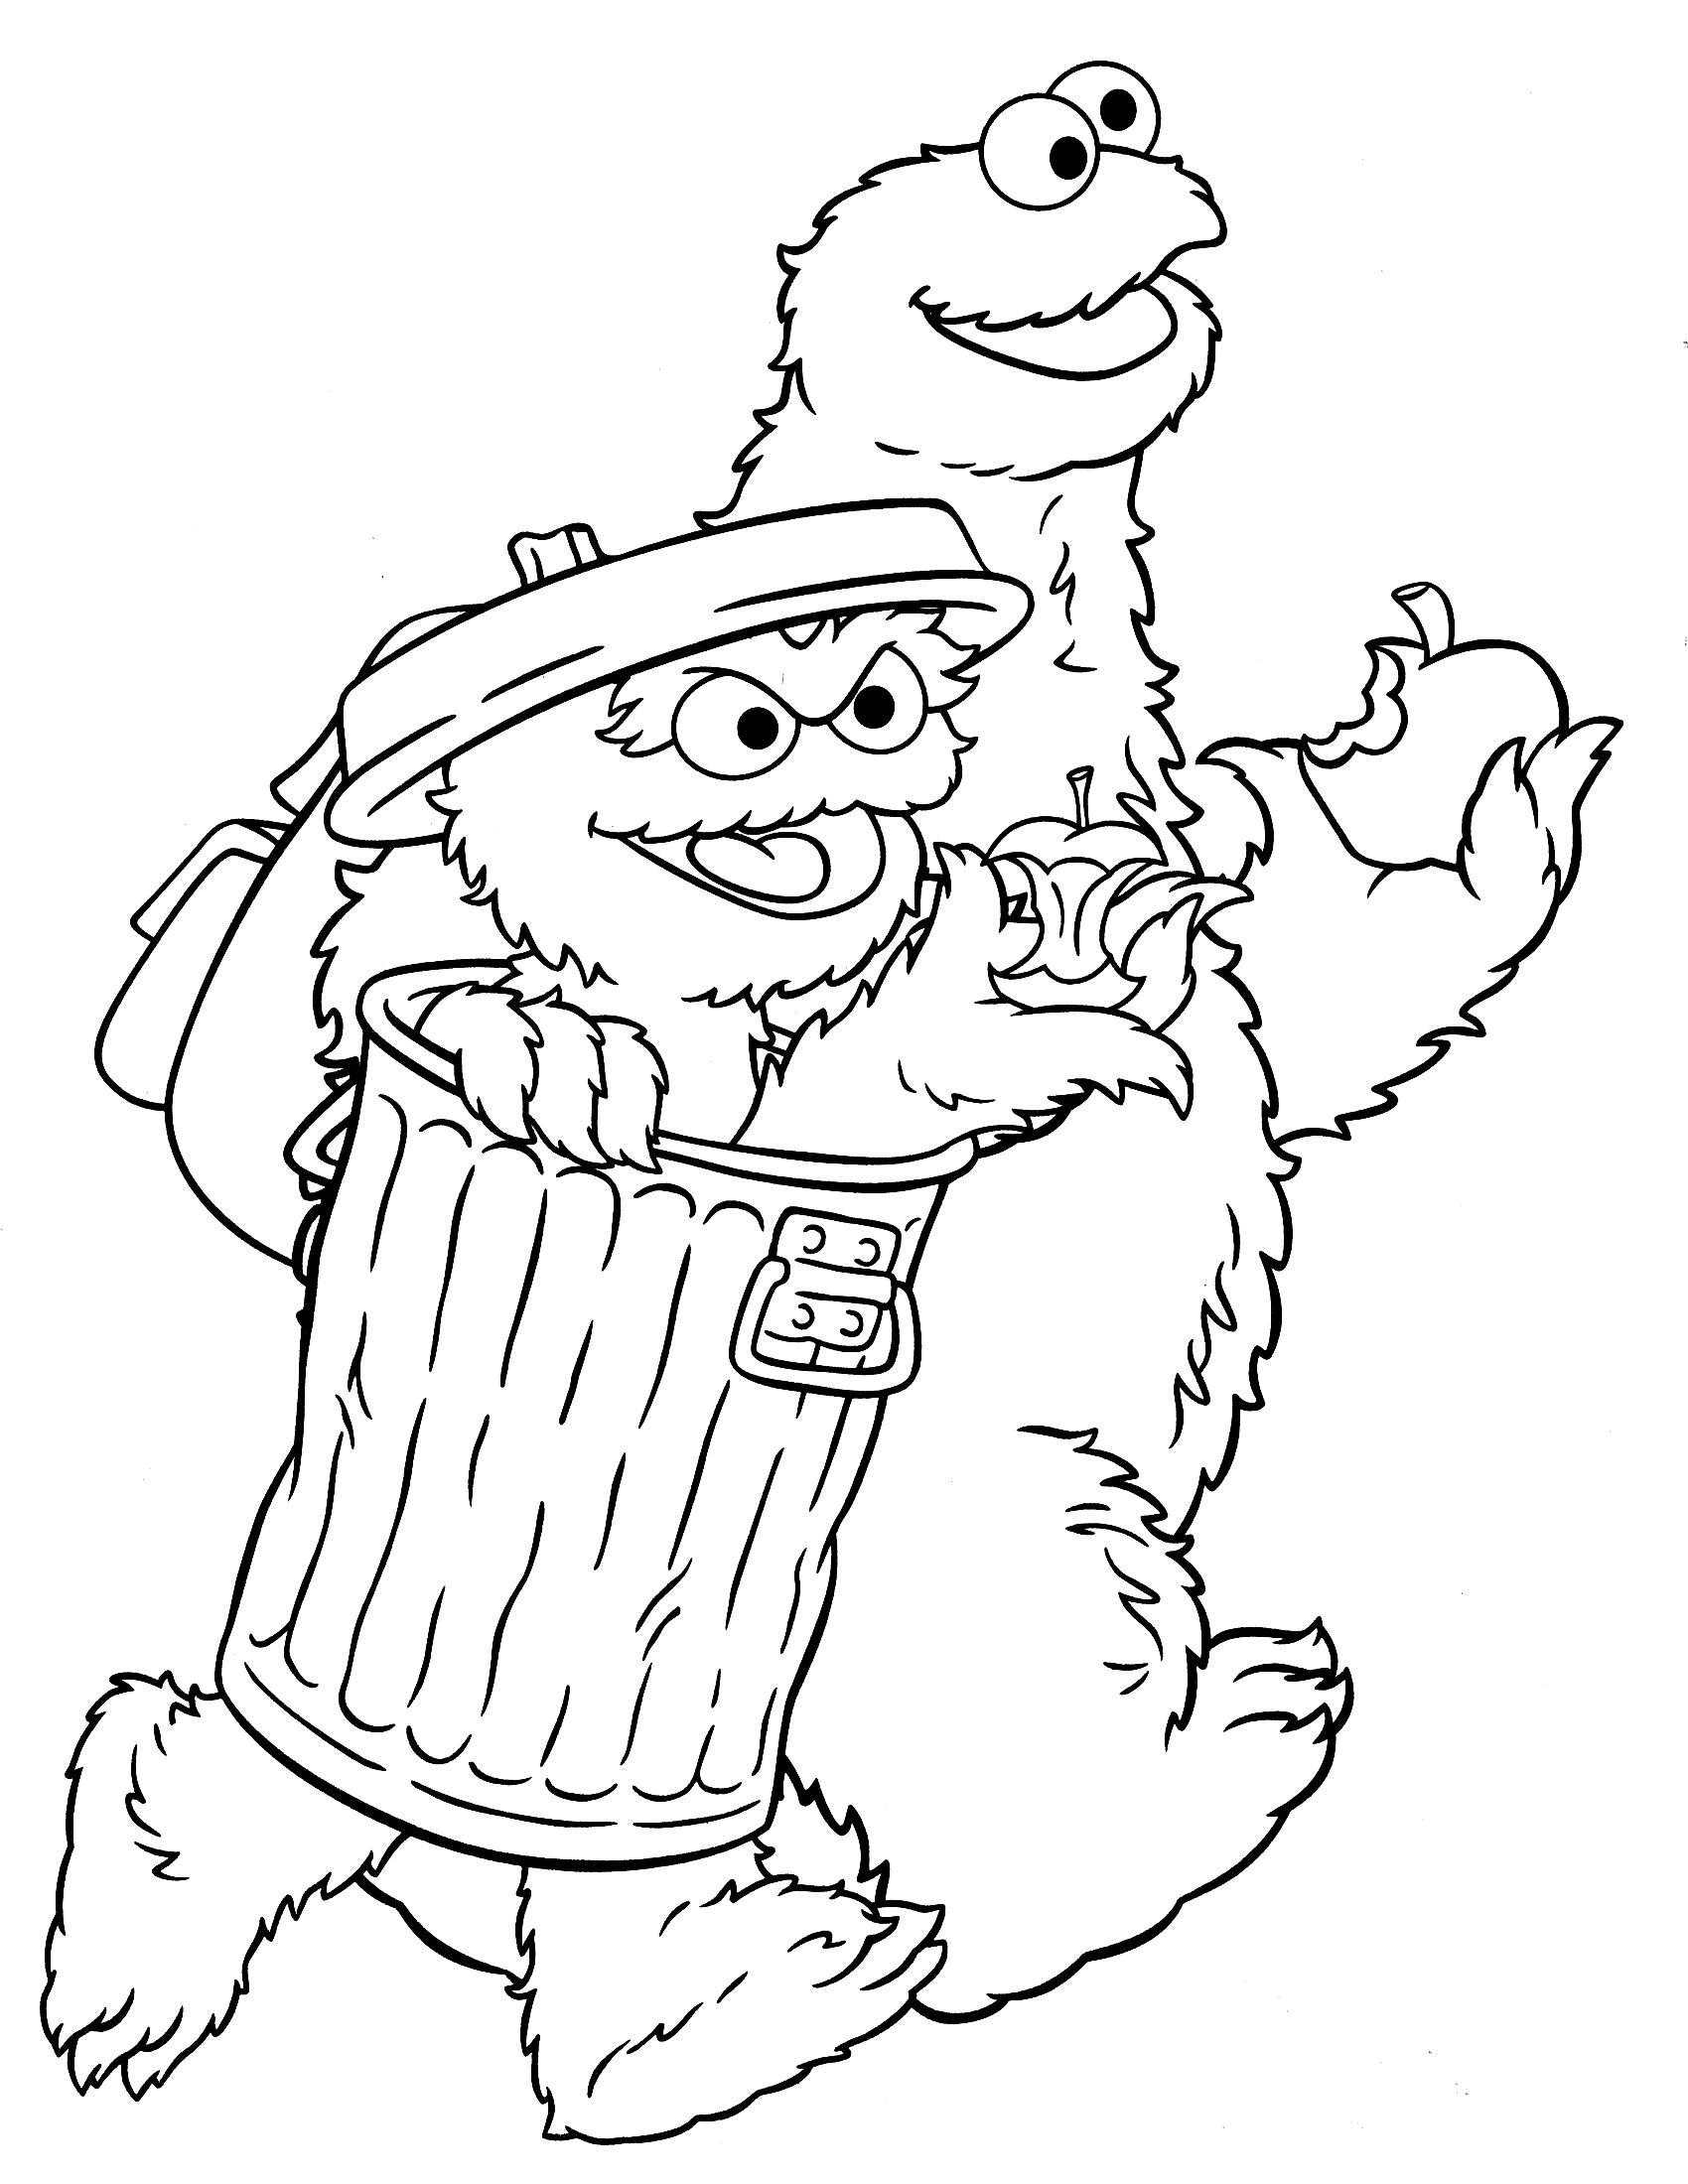 sesame street coloring pages - Bing Images | Coloring Pages for Kids ...